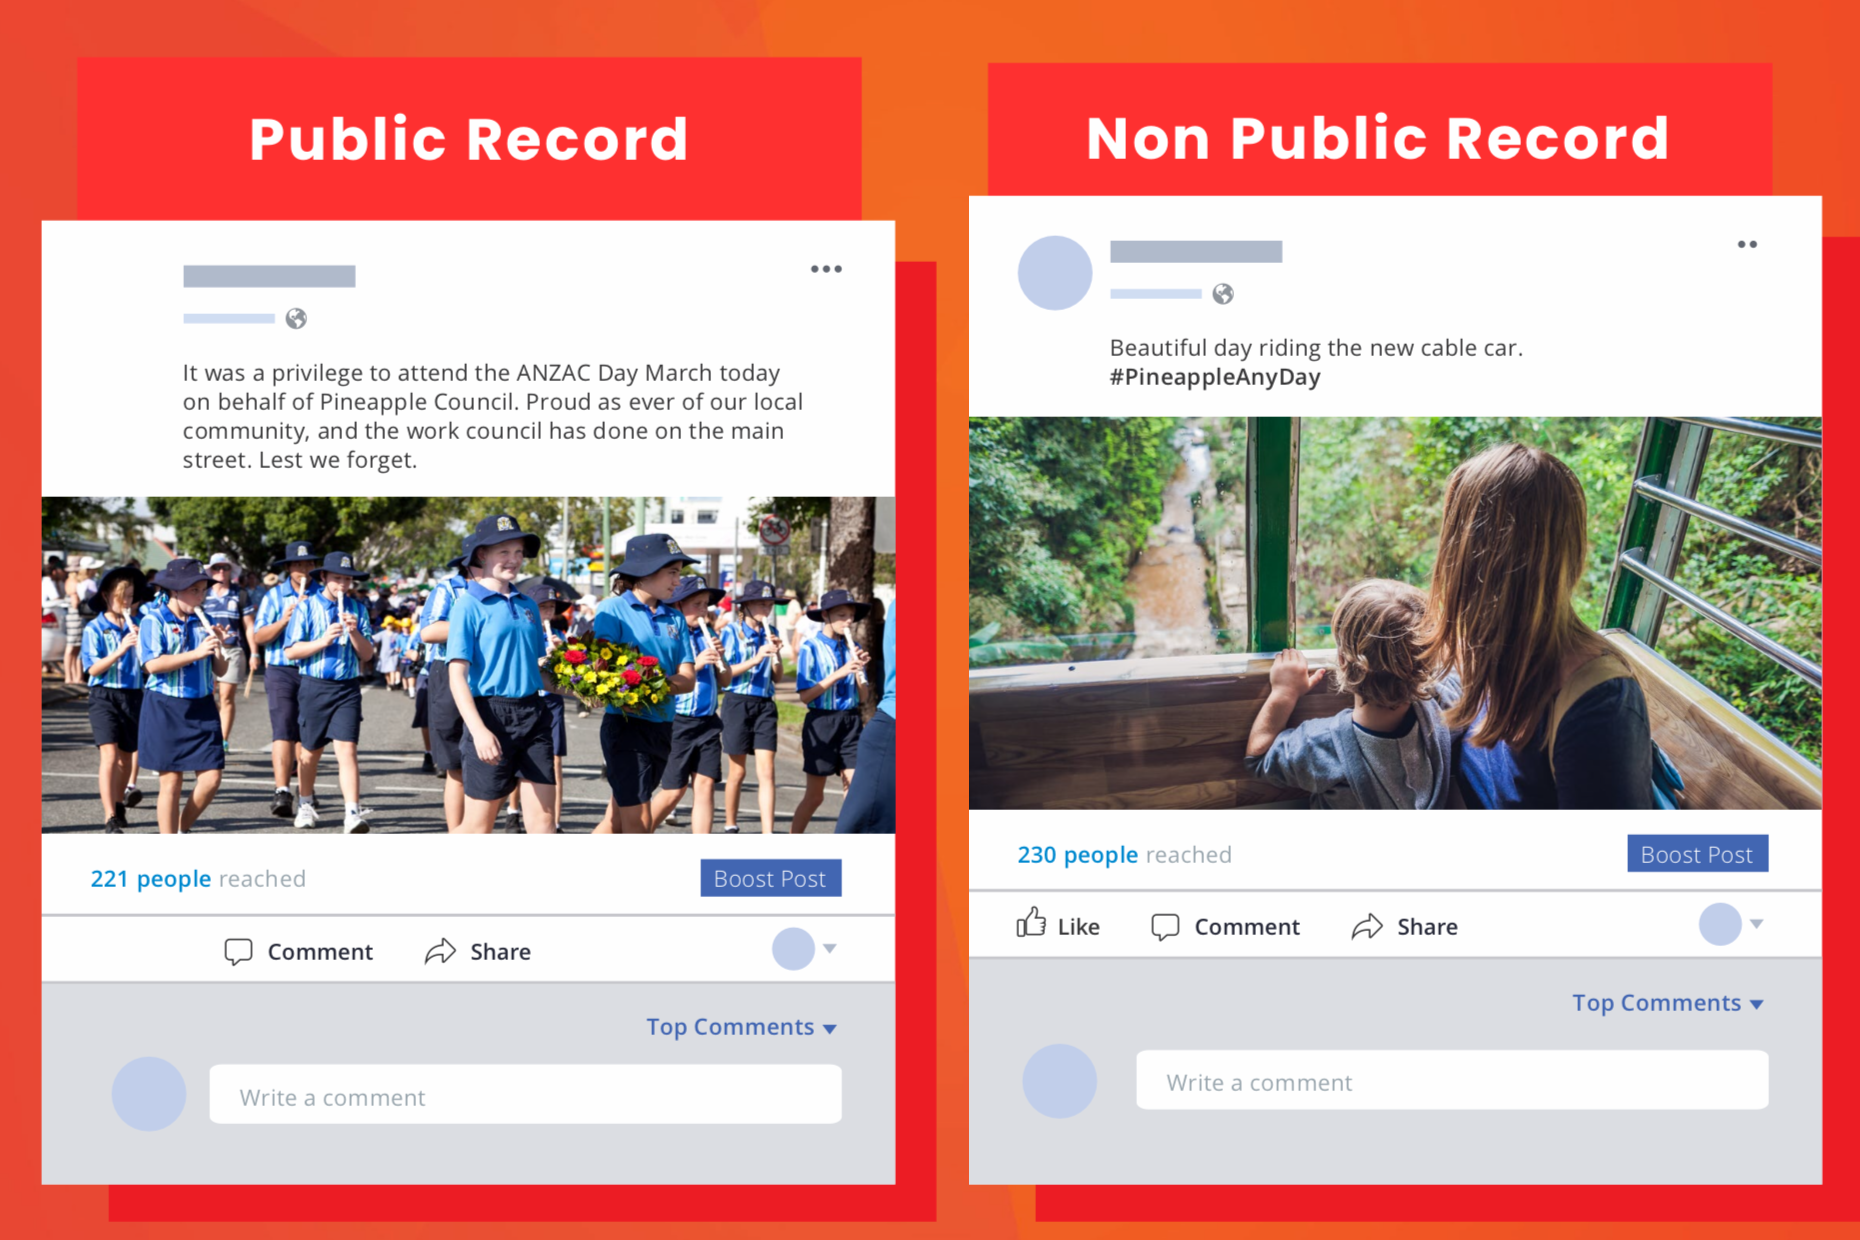 Public Record example post from   Your Social Media and You: A guide for elected council members in Queensland   .